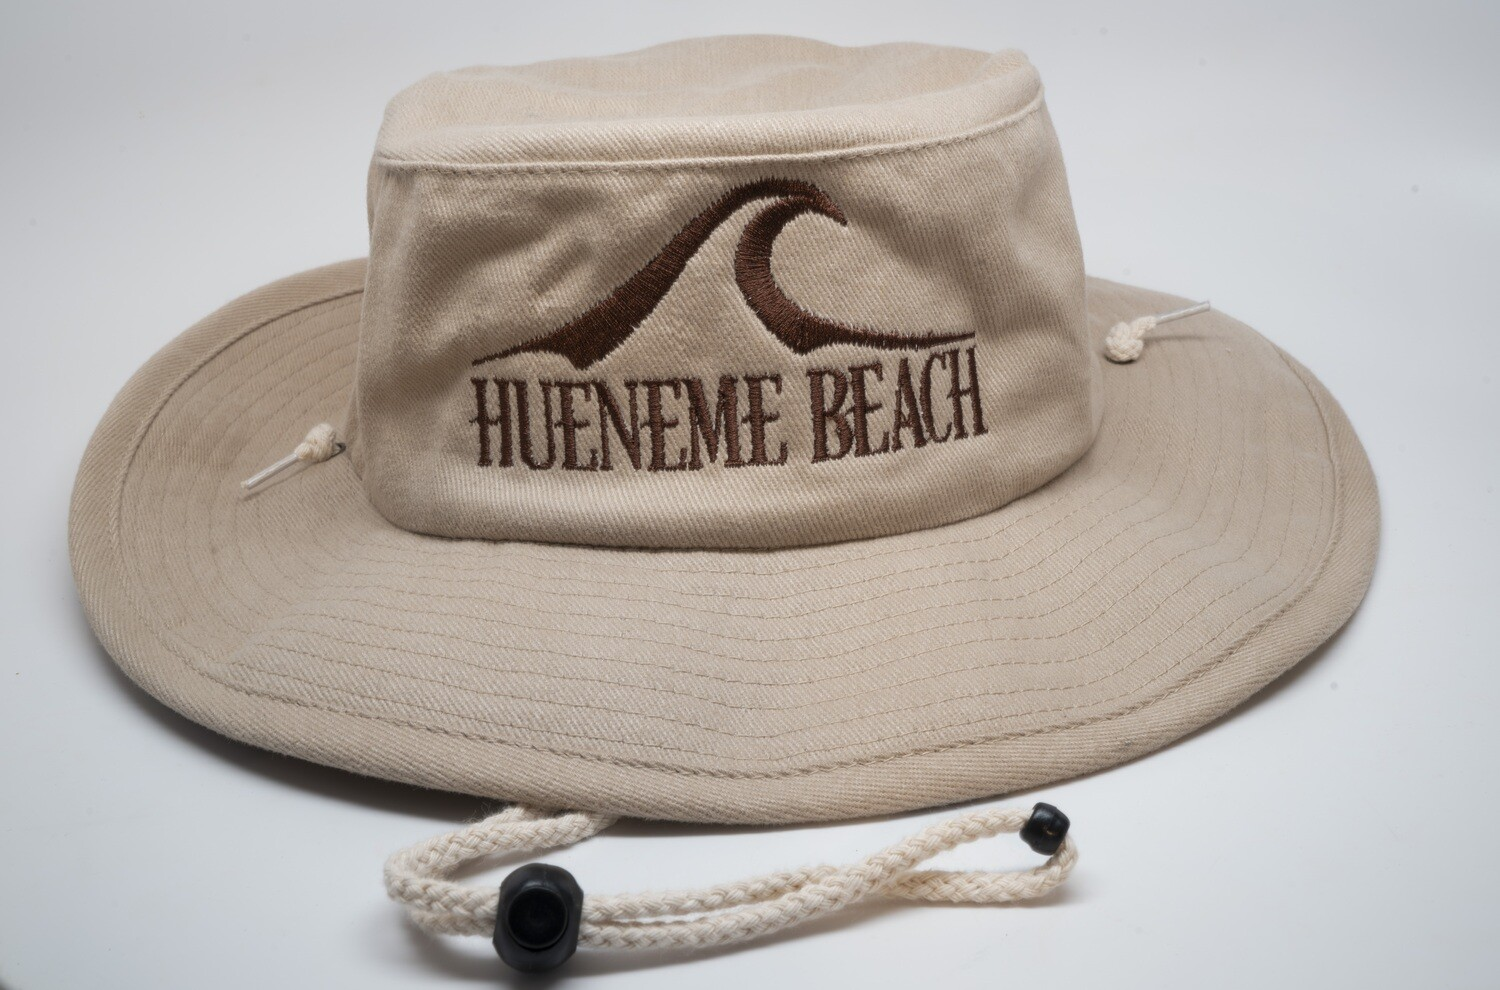 Hueneme Beach Drawstring Bucket Hat